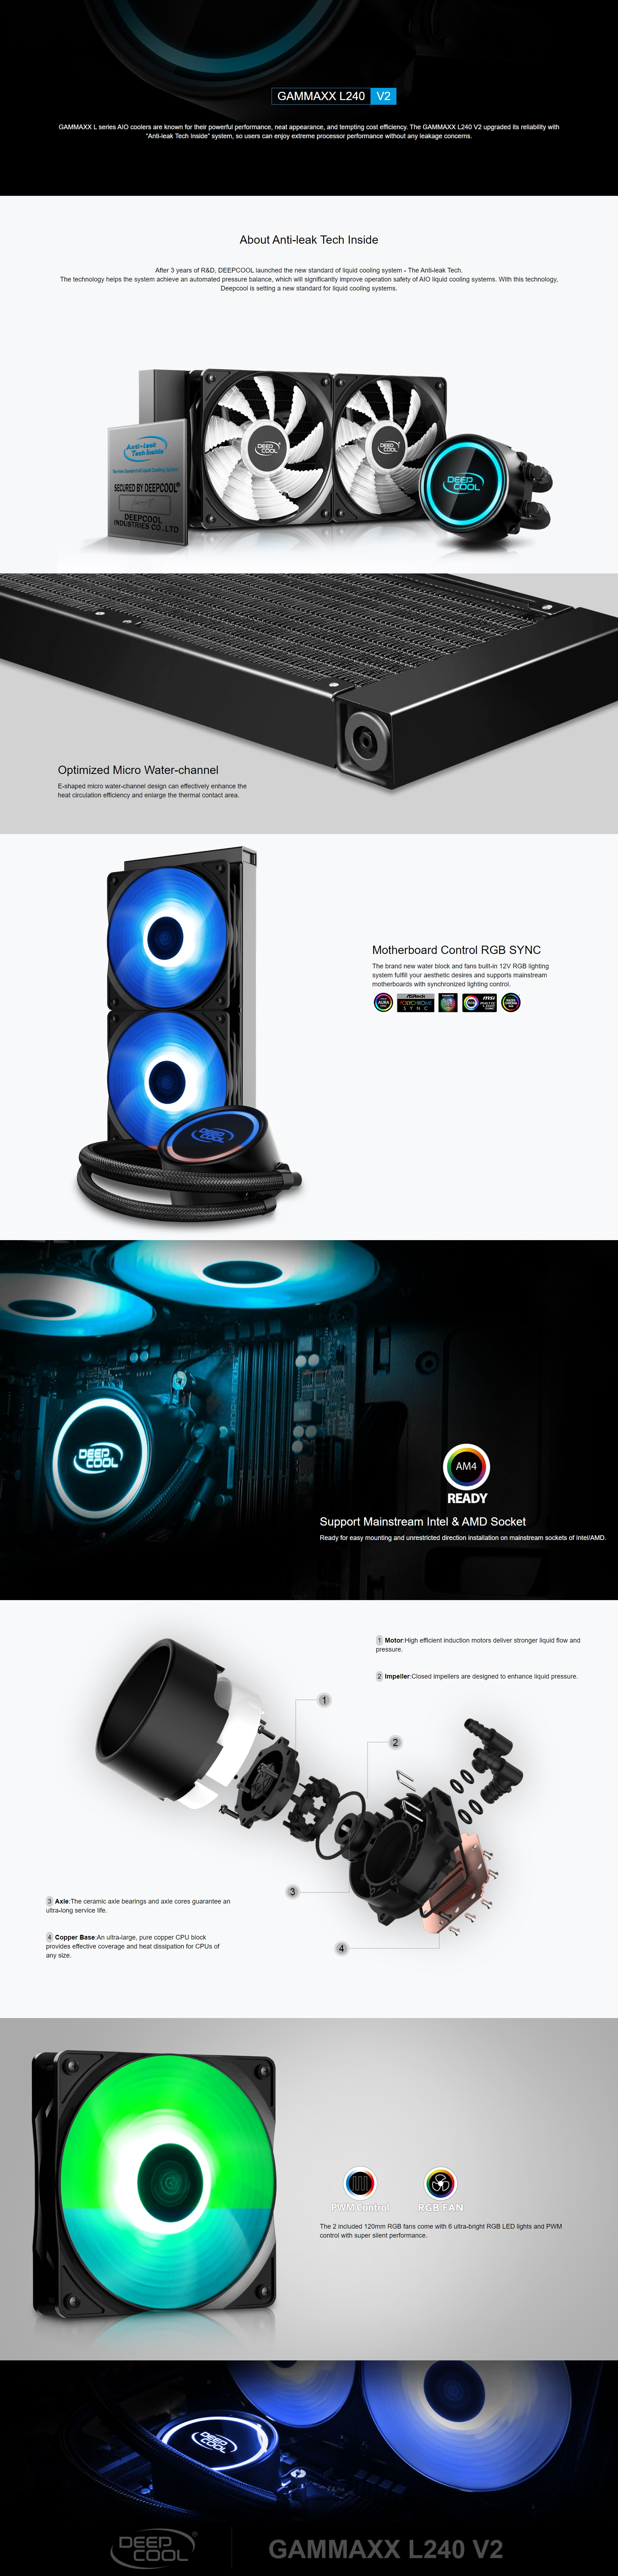 A large marketing image providing additional information about the product Deepcool GAMMAXX L240 V2 RGB AIO Liquid CPU Cooler - Additional alt info not provided